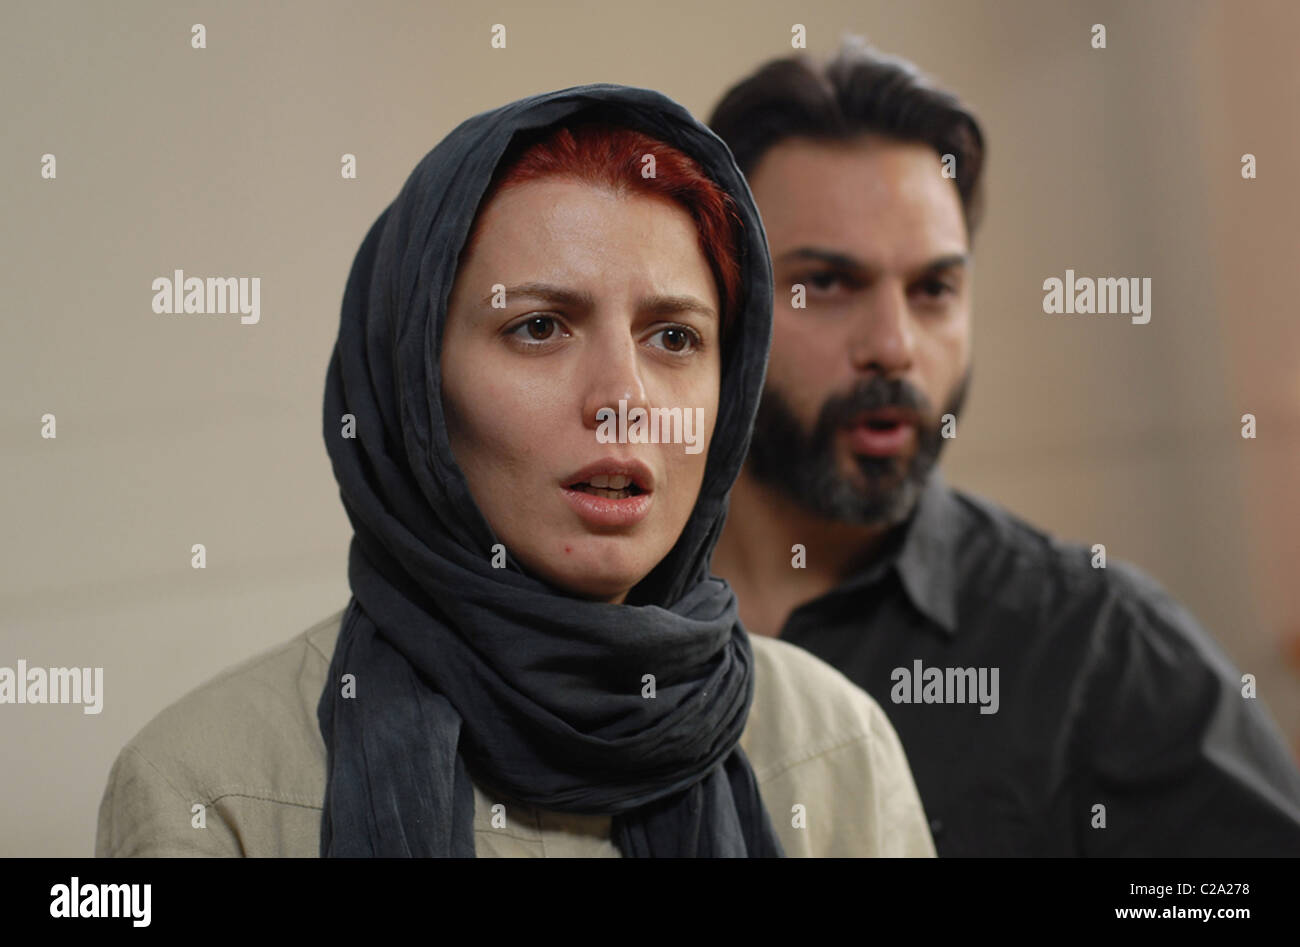 A SEPARATION (2011) JODAEIYE NADER AZ SIMIN (ALT) ASGHAR FARHADI (DIR) 002 MOVIESTORE COLLECTION LTD - Stock Image